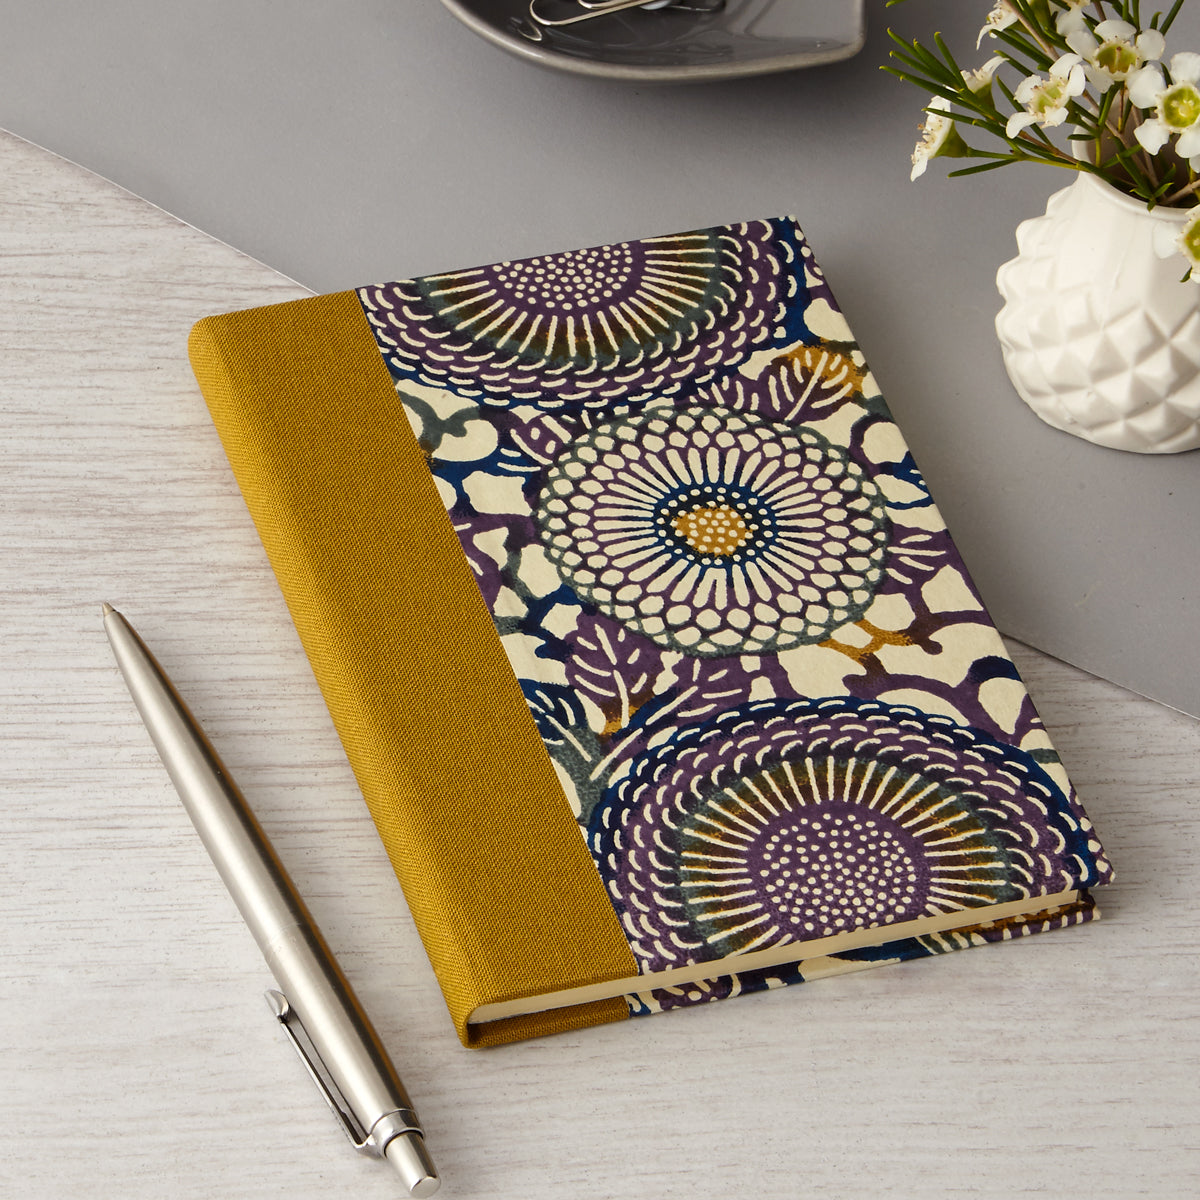 personalised-journals